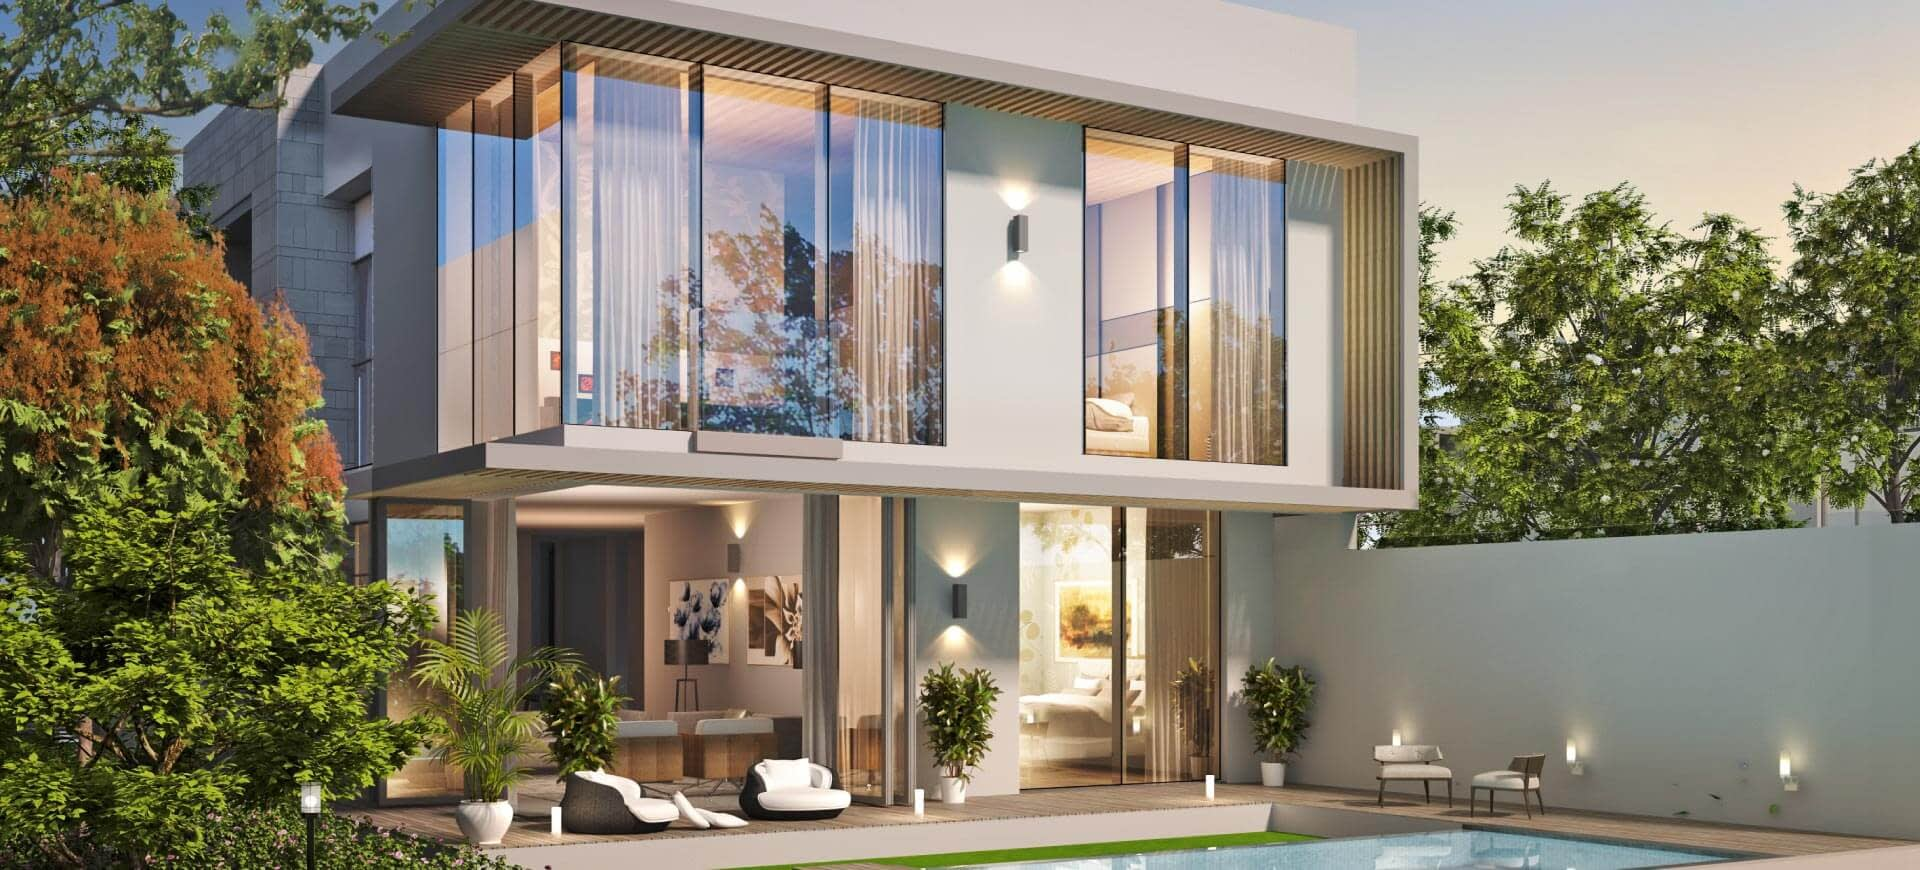 Using Cryptocurrency to buy Real Estate in Dubai